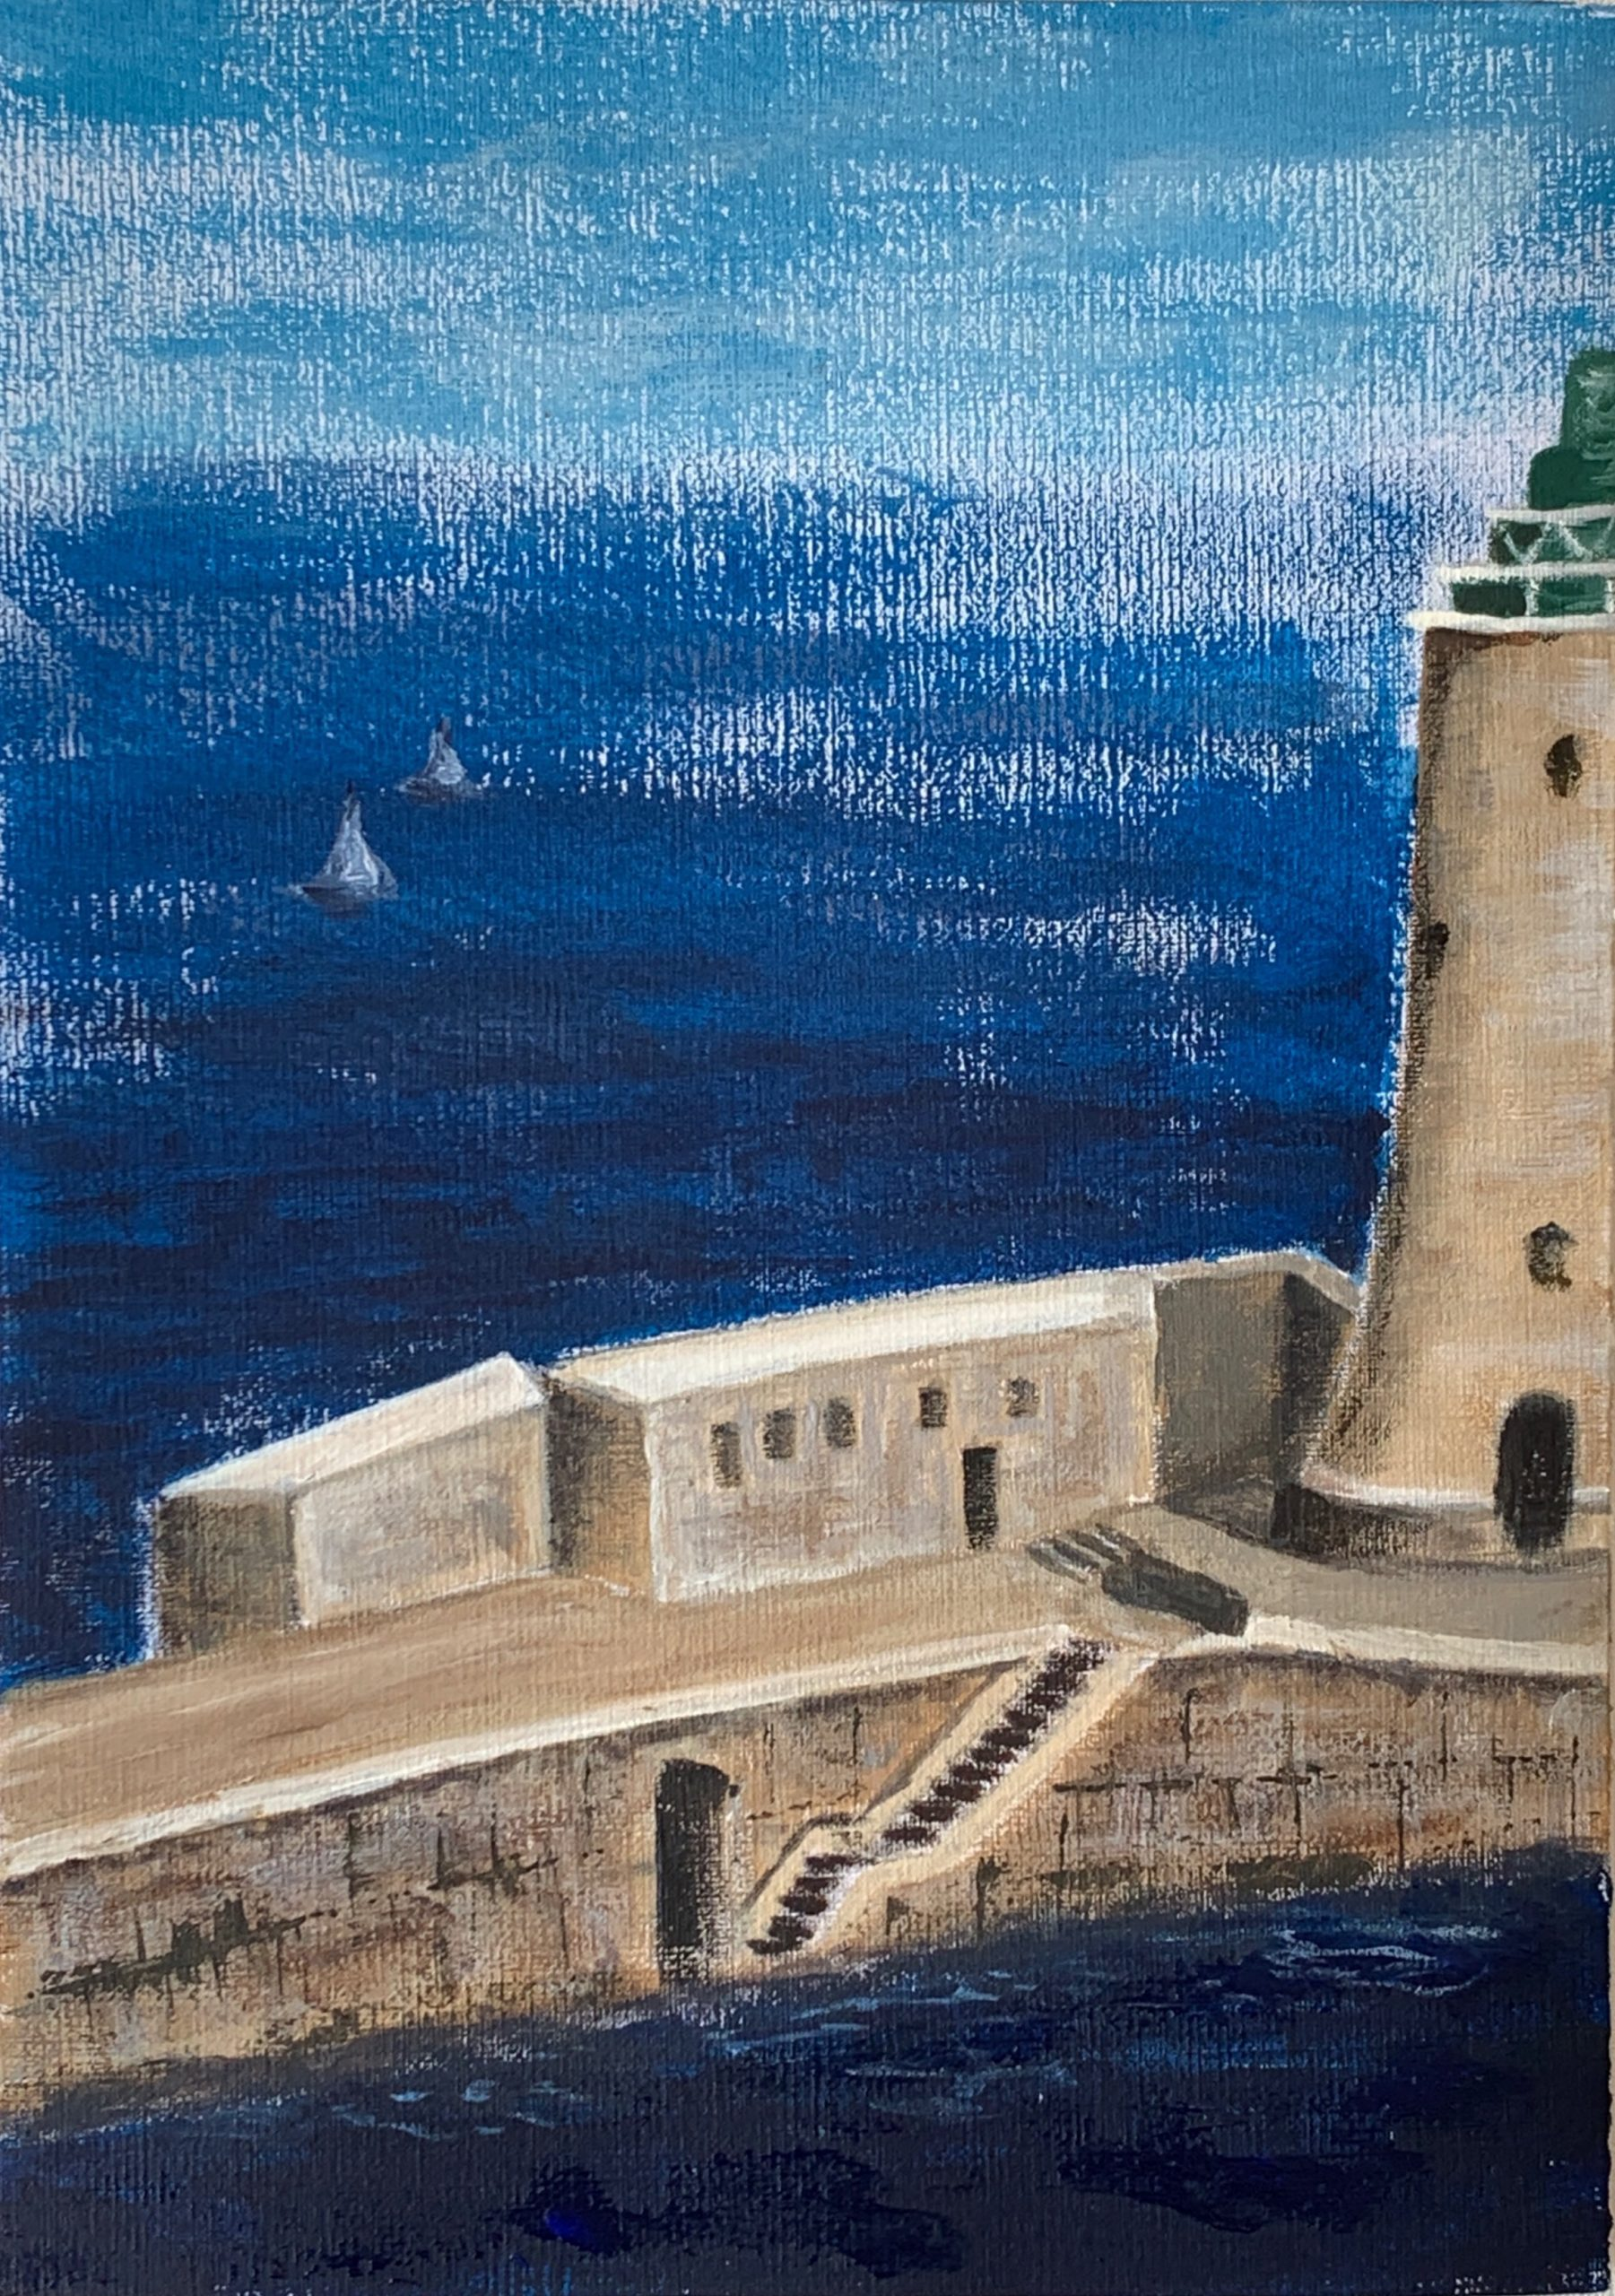 (69) Janine Hall - St Elmo Breakwater Lighthouse - Entrance to Grand Harbour - Valetta, Malta Image